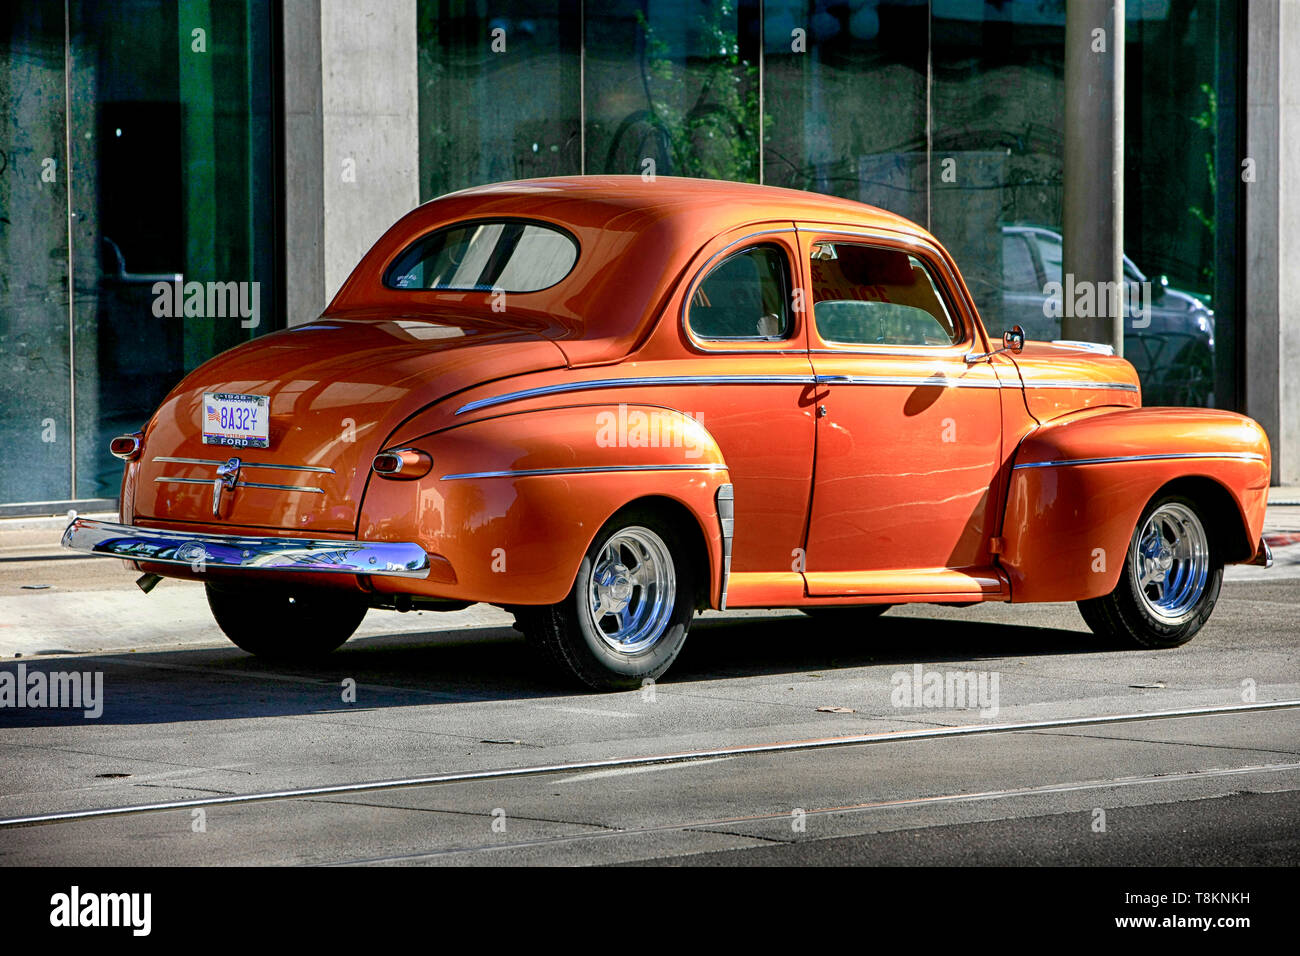 1941 Ford Coupe Stock Photos & 1941 Ford Coupe Stock Images